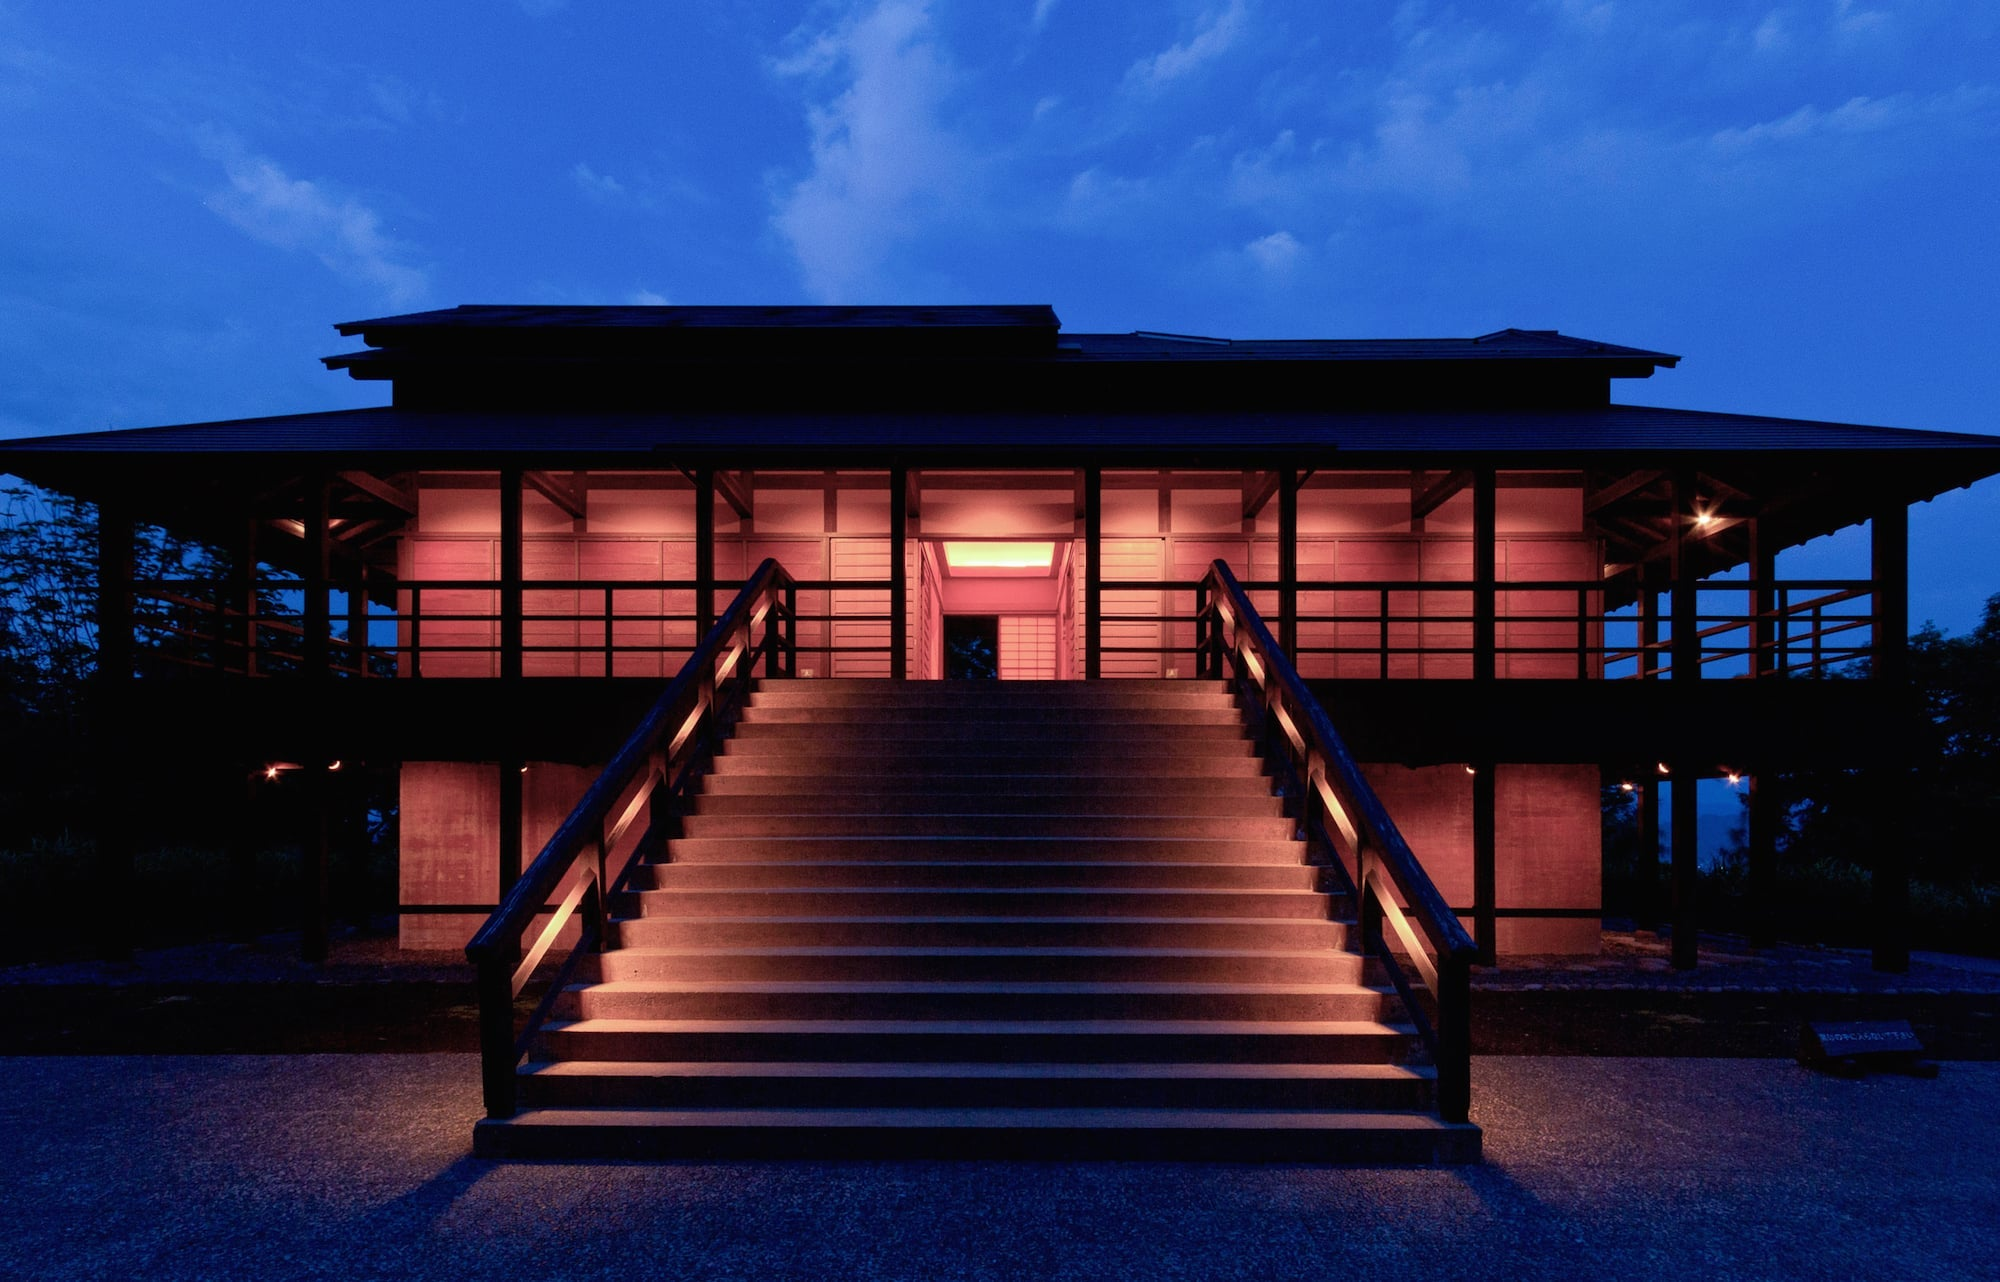 The House of Light in Niigata, Japan, has a Skyspace by James Turrell. Photo by Tsutomu Yamada